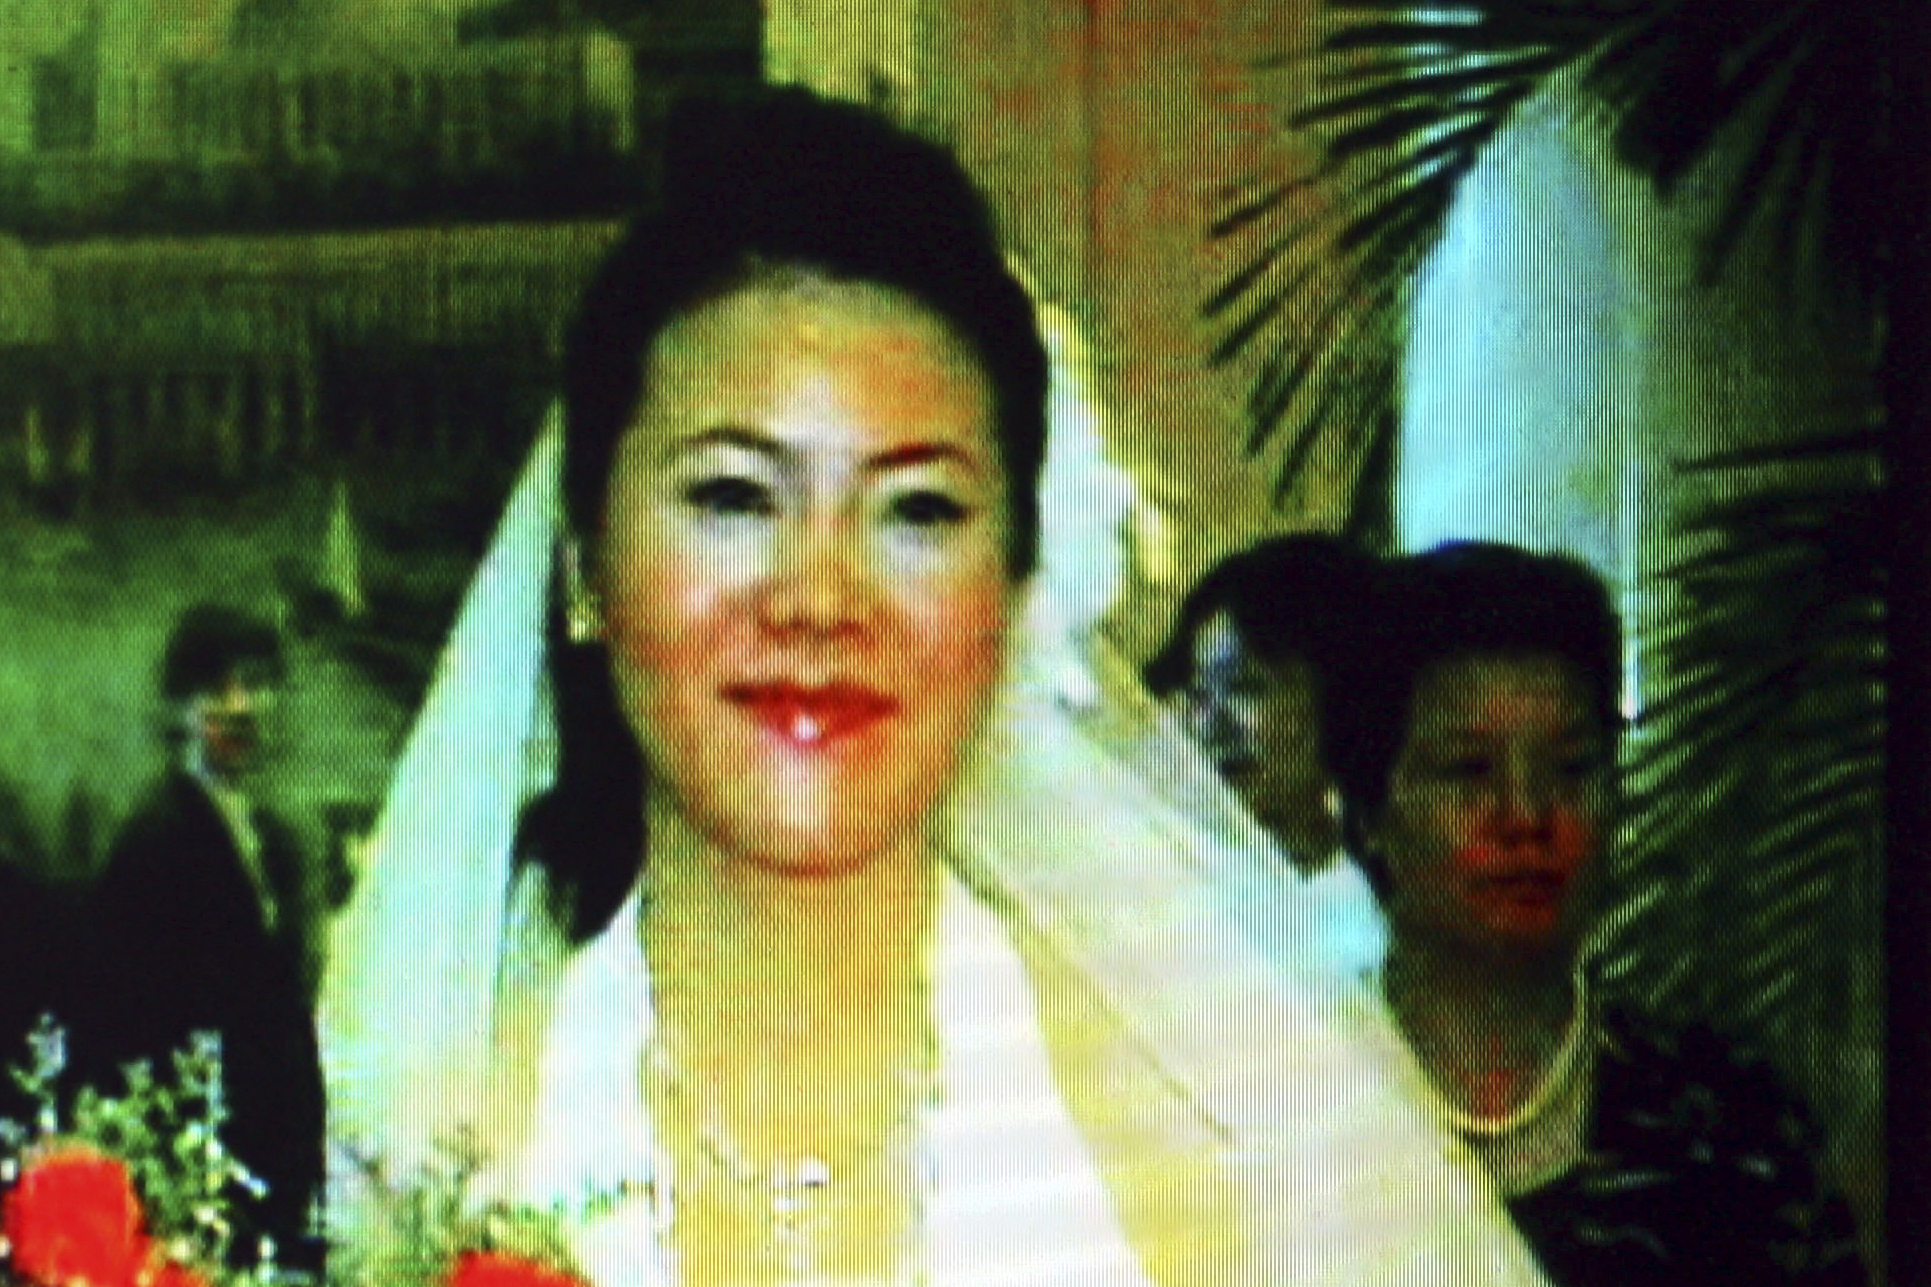 Video screen shot taken on October 23, 2008 shows Yang Huiyan, right, a major shareholder of Country Garden and Chinese Mainlands richest woman, and her husband Chen Chong during their wedding ceremony in Foshan city, south Chinas Guangdong province, 2006.